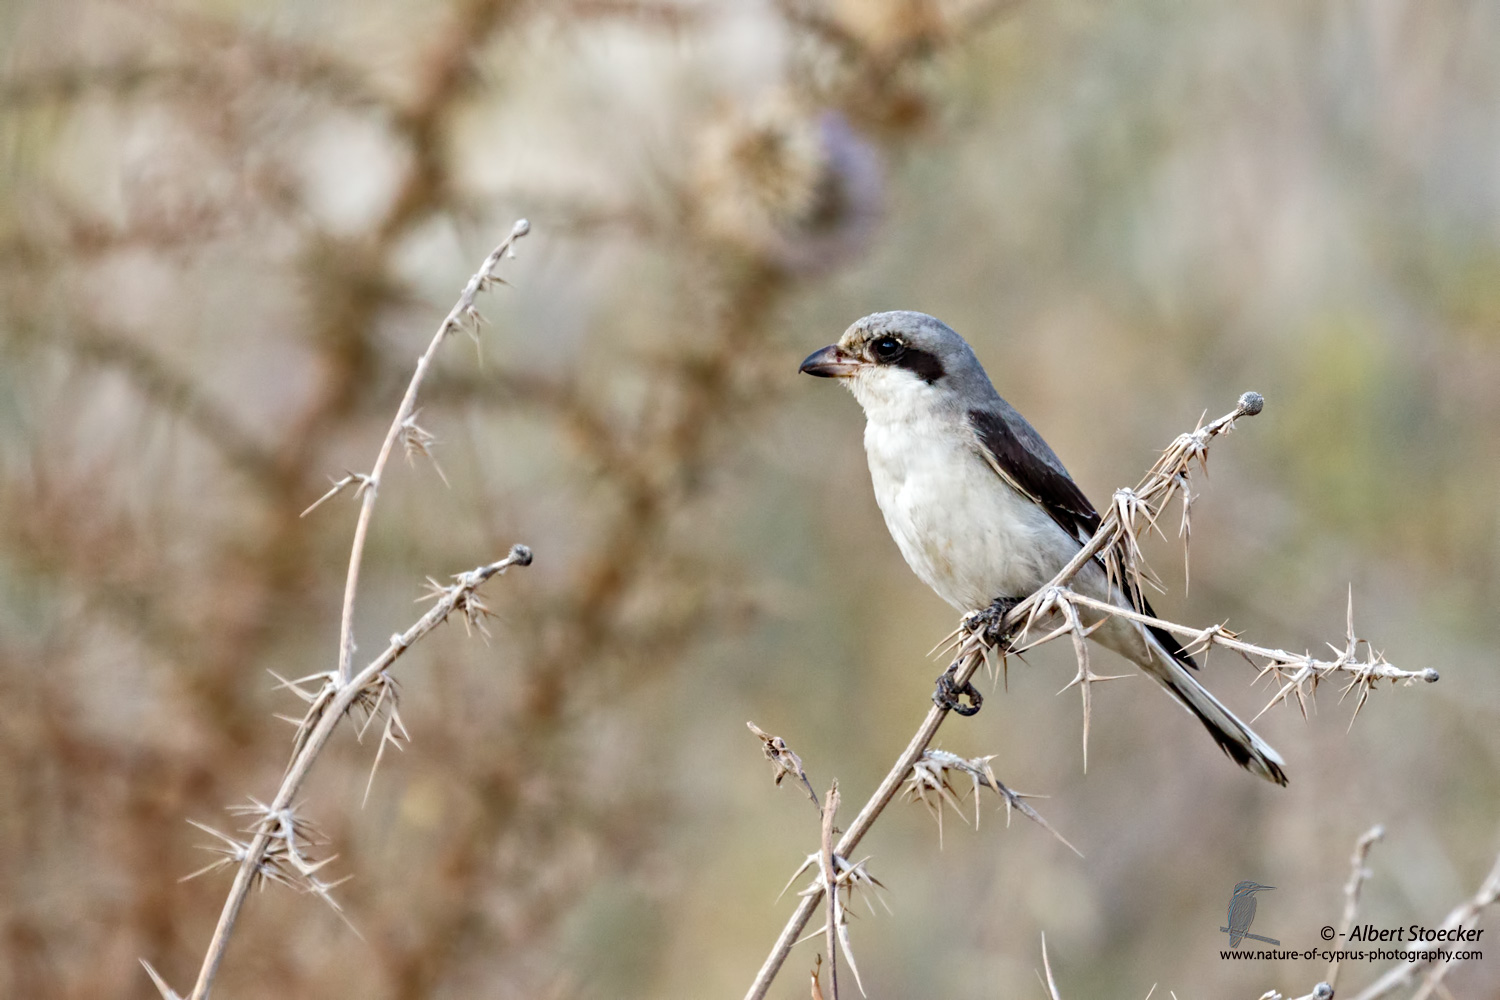 Lanius minor - Lesser Grey Shrike - Scharzstirnwuerger, Cyprus, Agia Varvara, September 2016